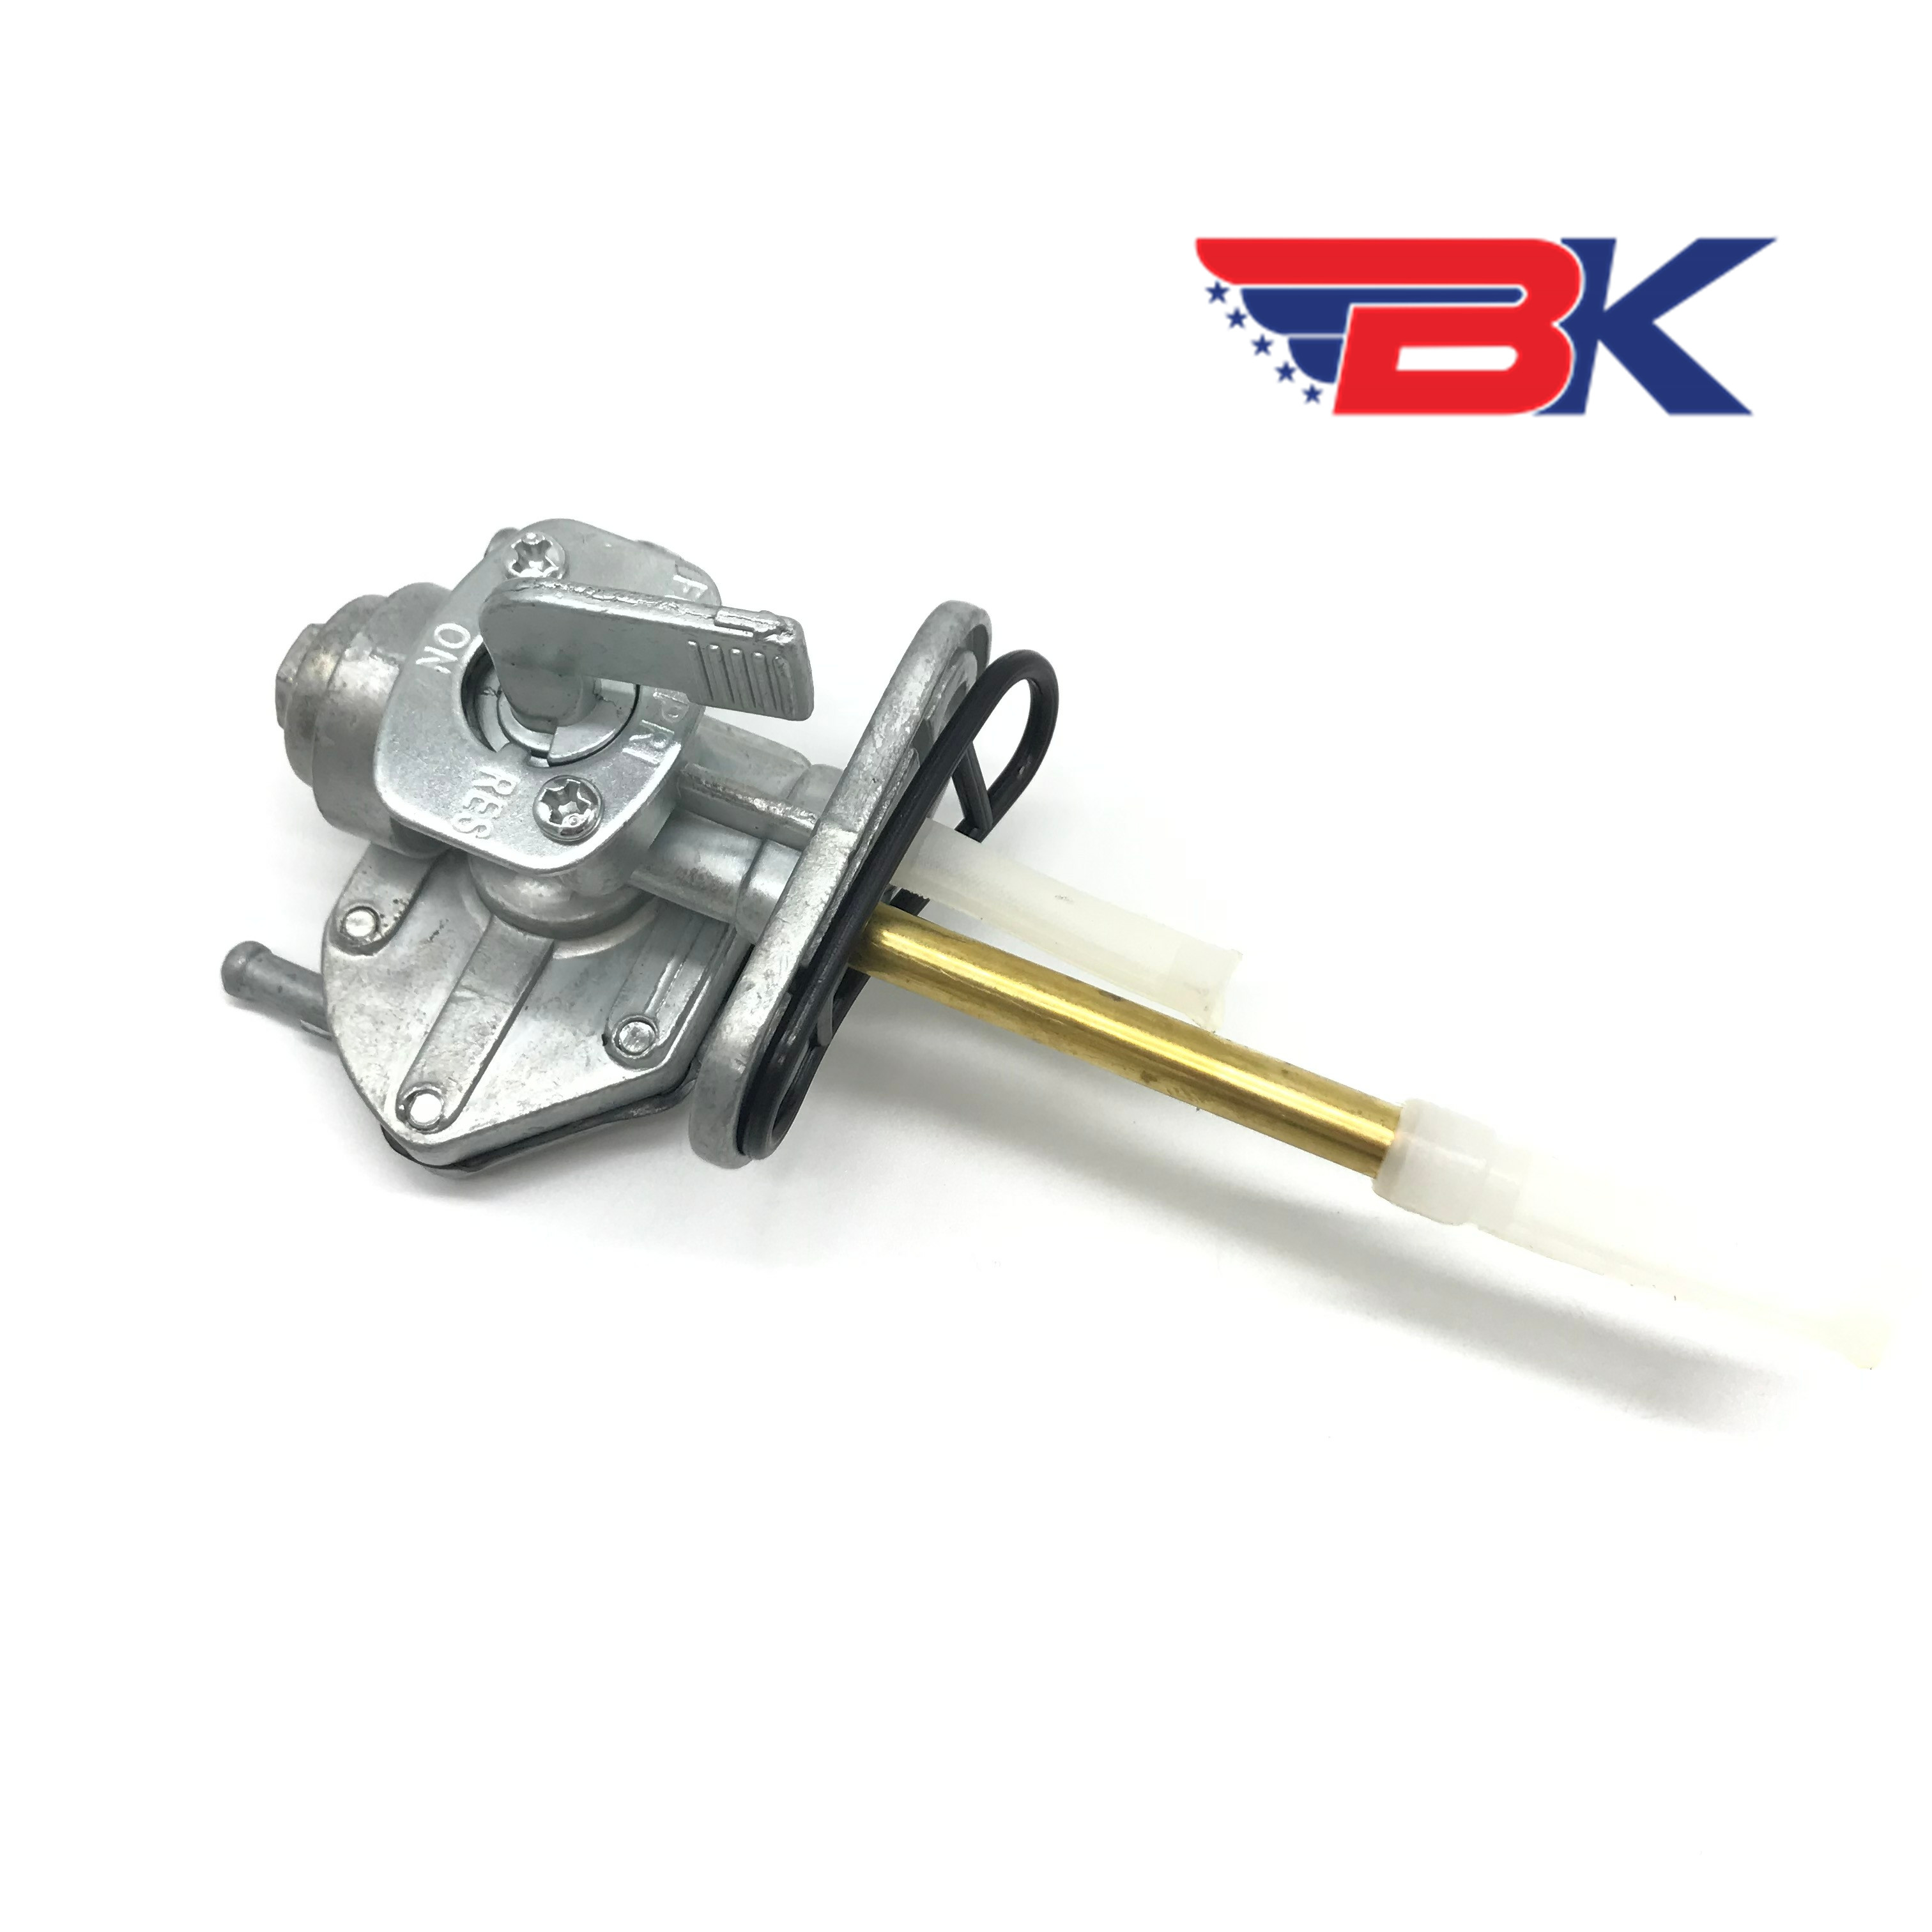 FUEL VALVE PETCOCK ASSEMBLY FOR SUZUKI BANDIT GSF600S GSF1200 GSF 600 1200